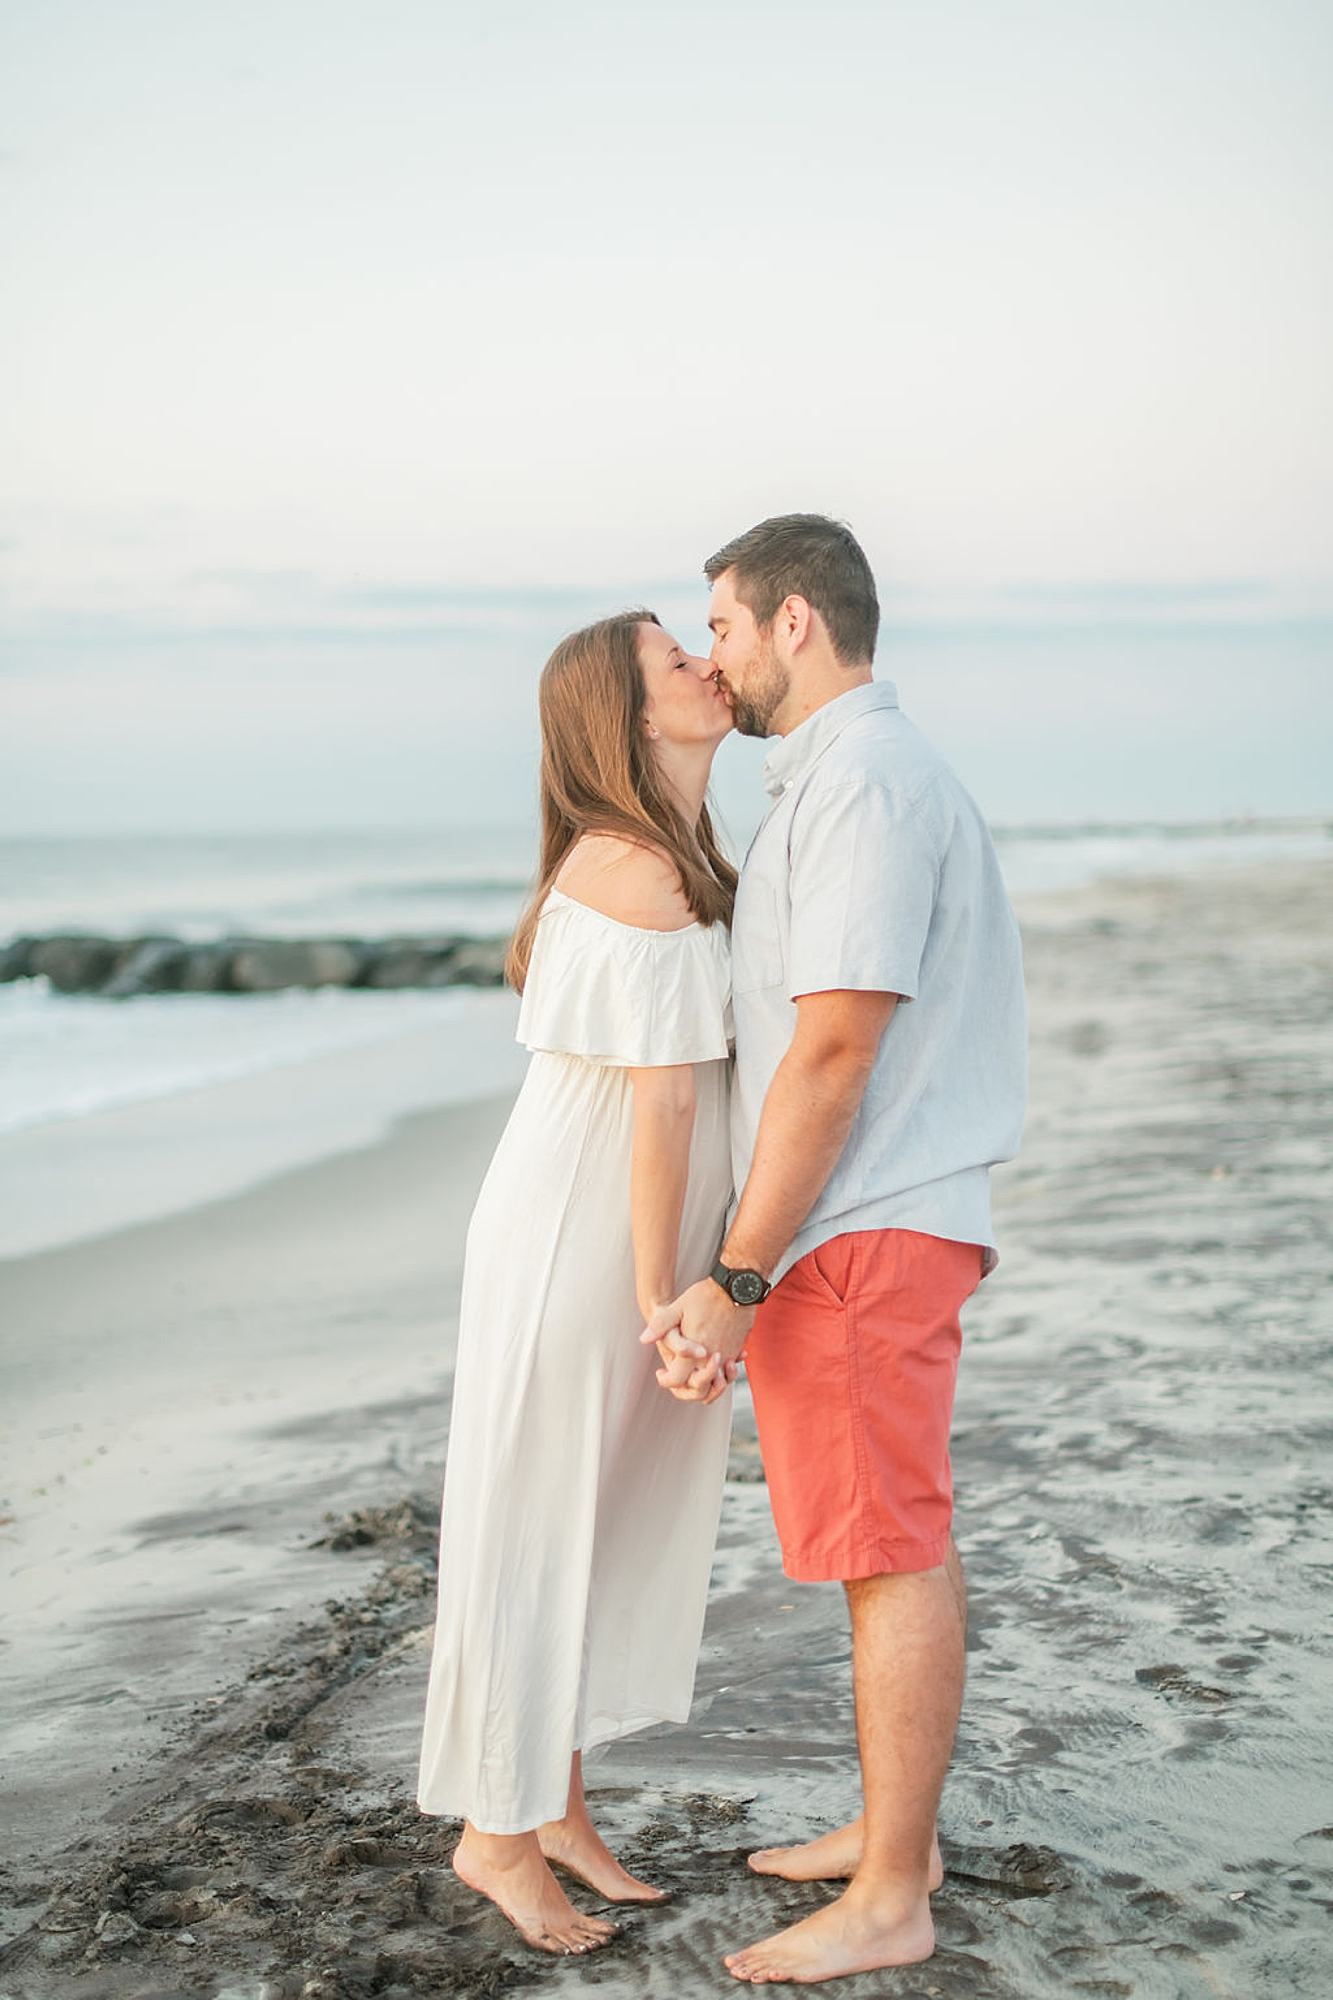 Glowy and Romantic Maternity Photography in Ocean City NJ by Magdalena Studios 0005